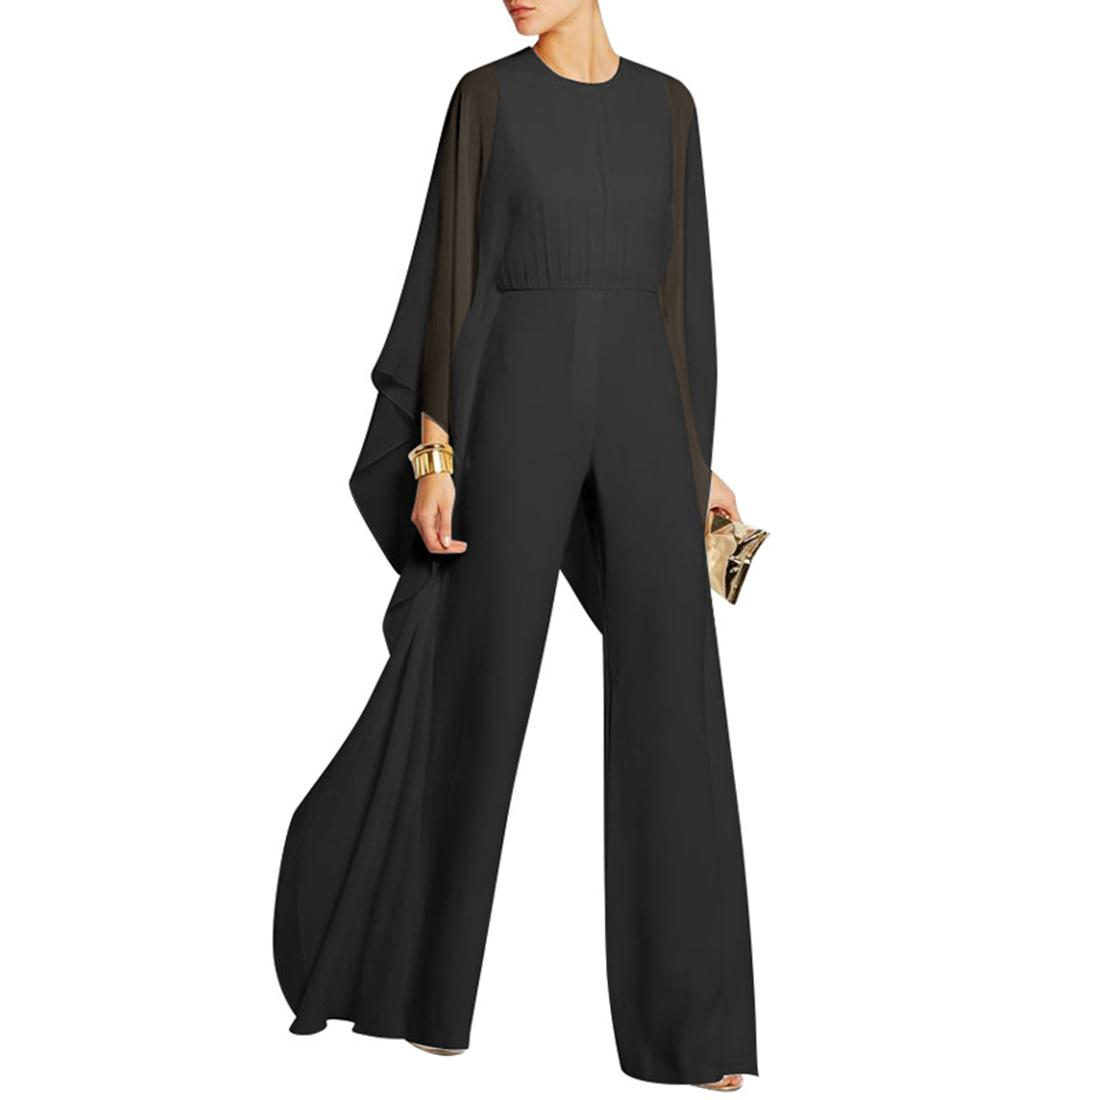 Ruffle Poncho Jumpsuit Rompers Women Elegant Chiffon Party Jumpsuit Autumn High Waist Bodysuit Women Casual Cape Overalls